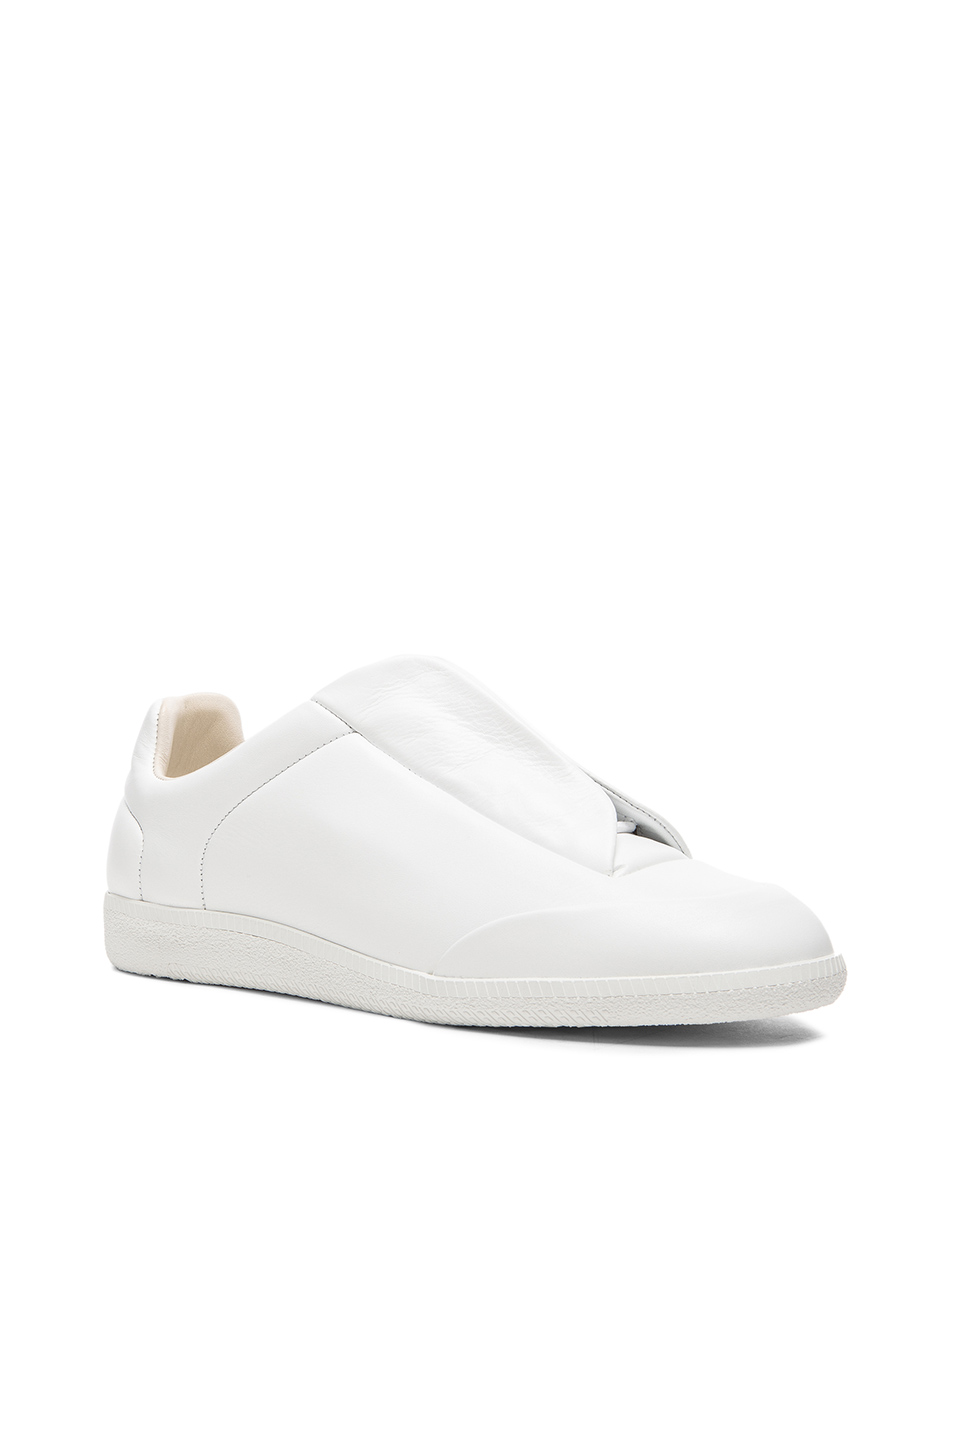 Maison Margiela Future Low Top in White